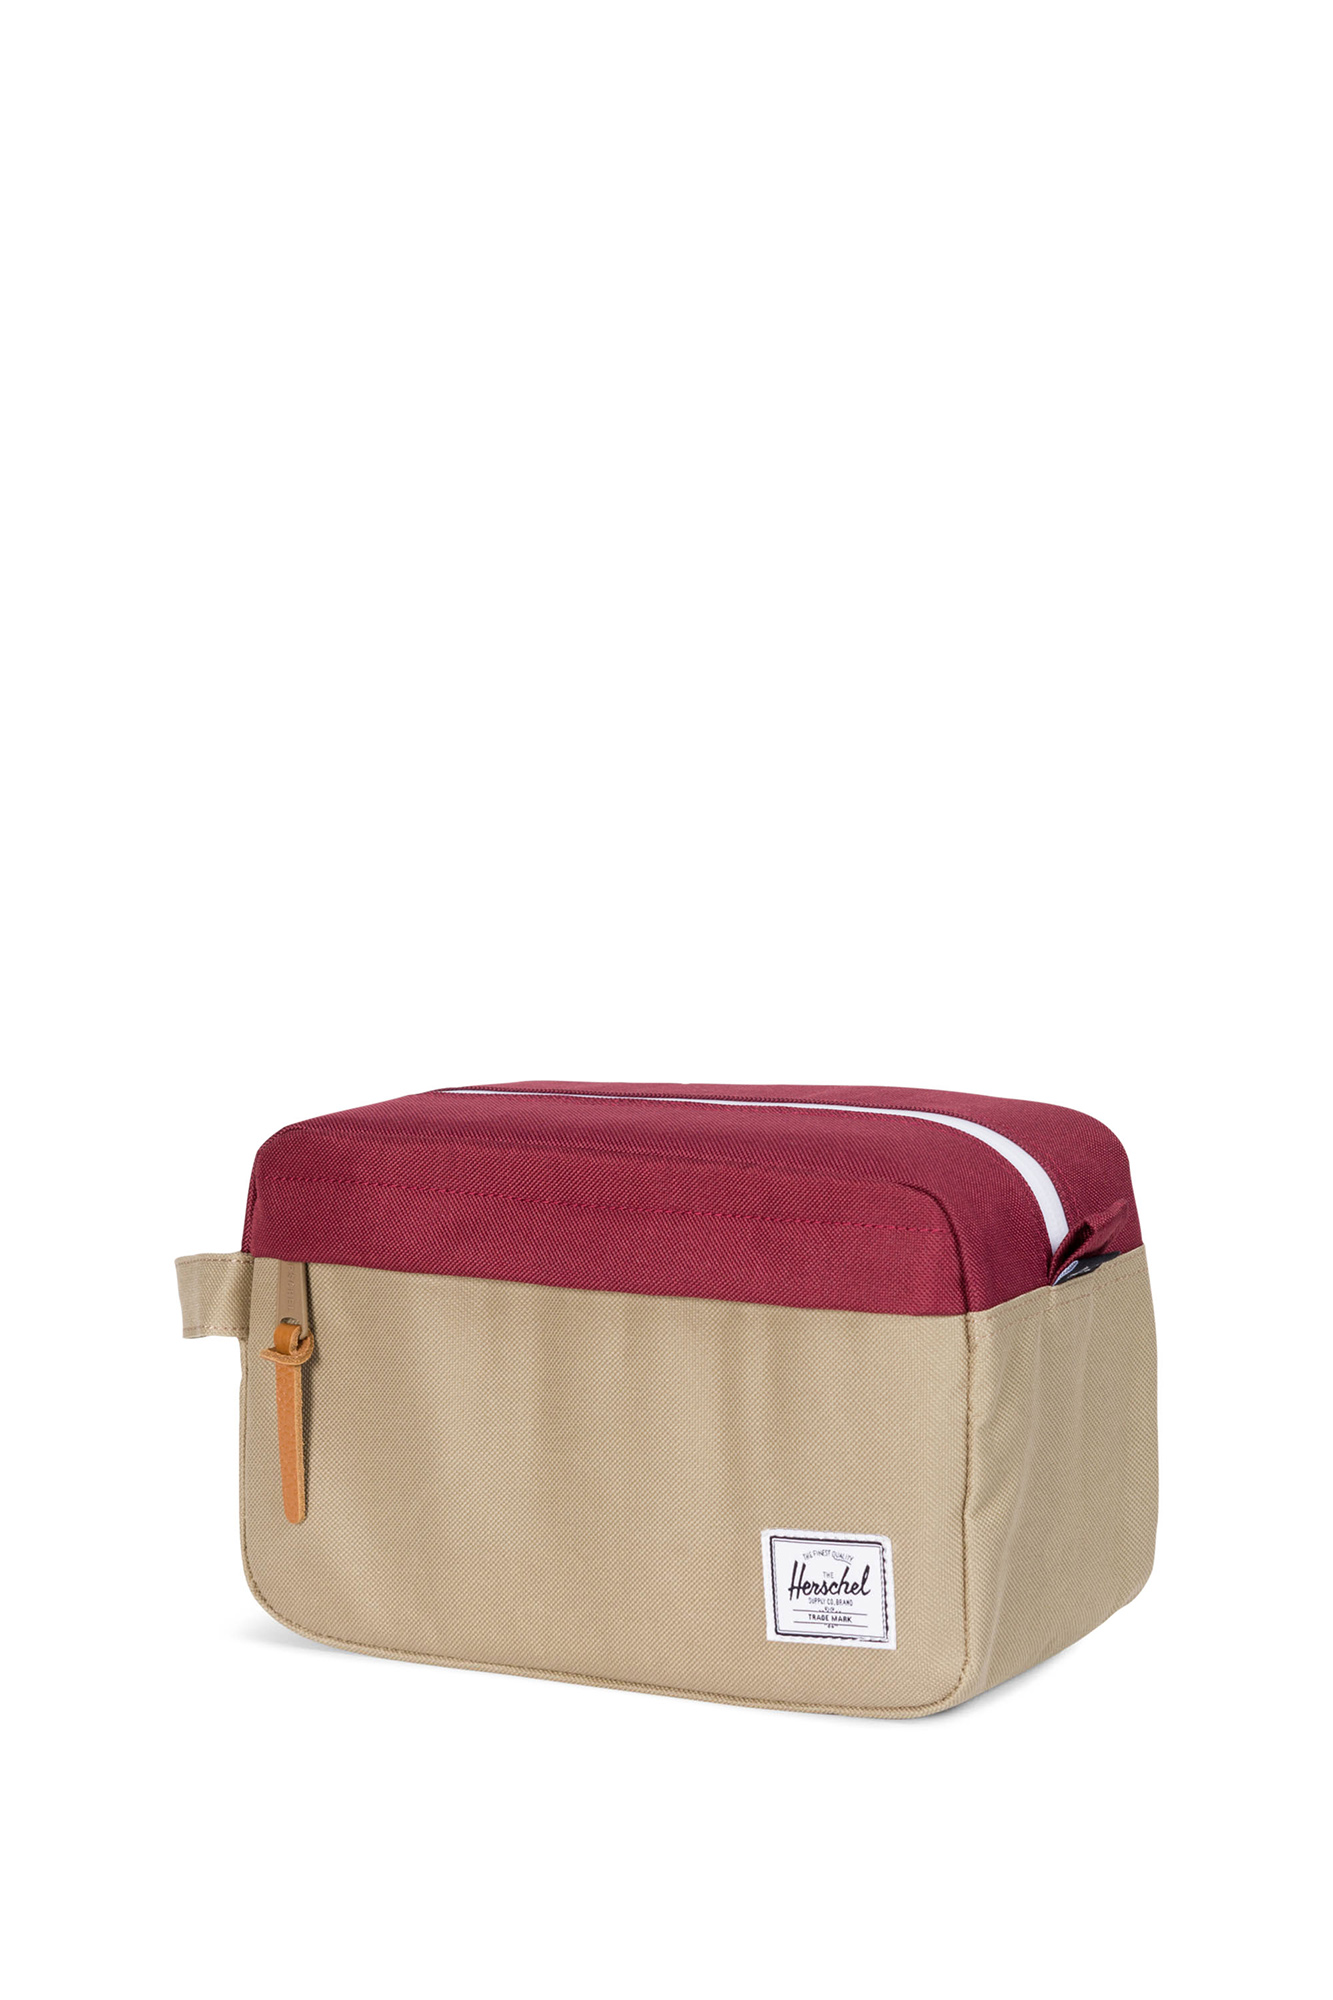 Herschel - Beauty Chapter classic travel brindle/windsor wine